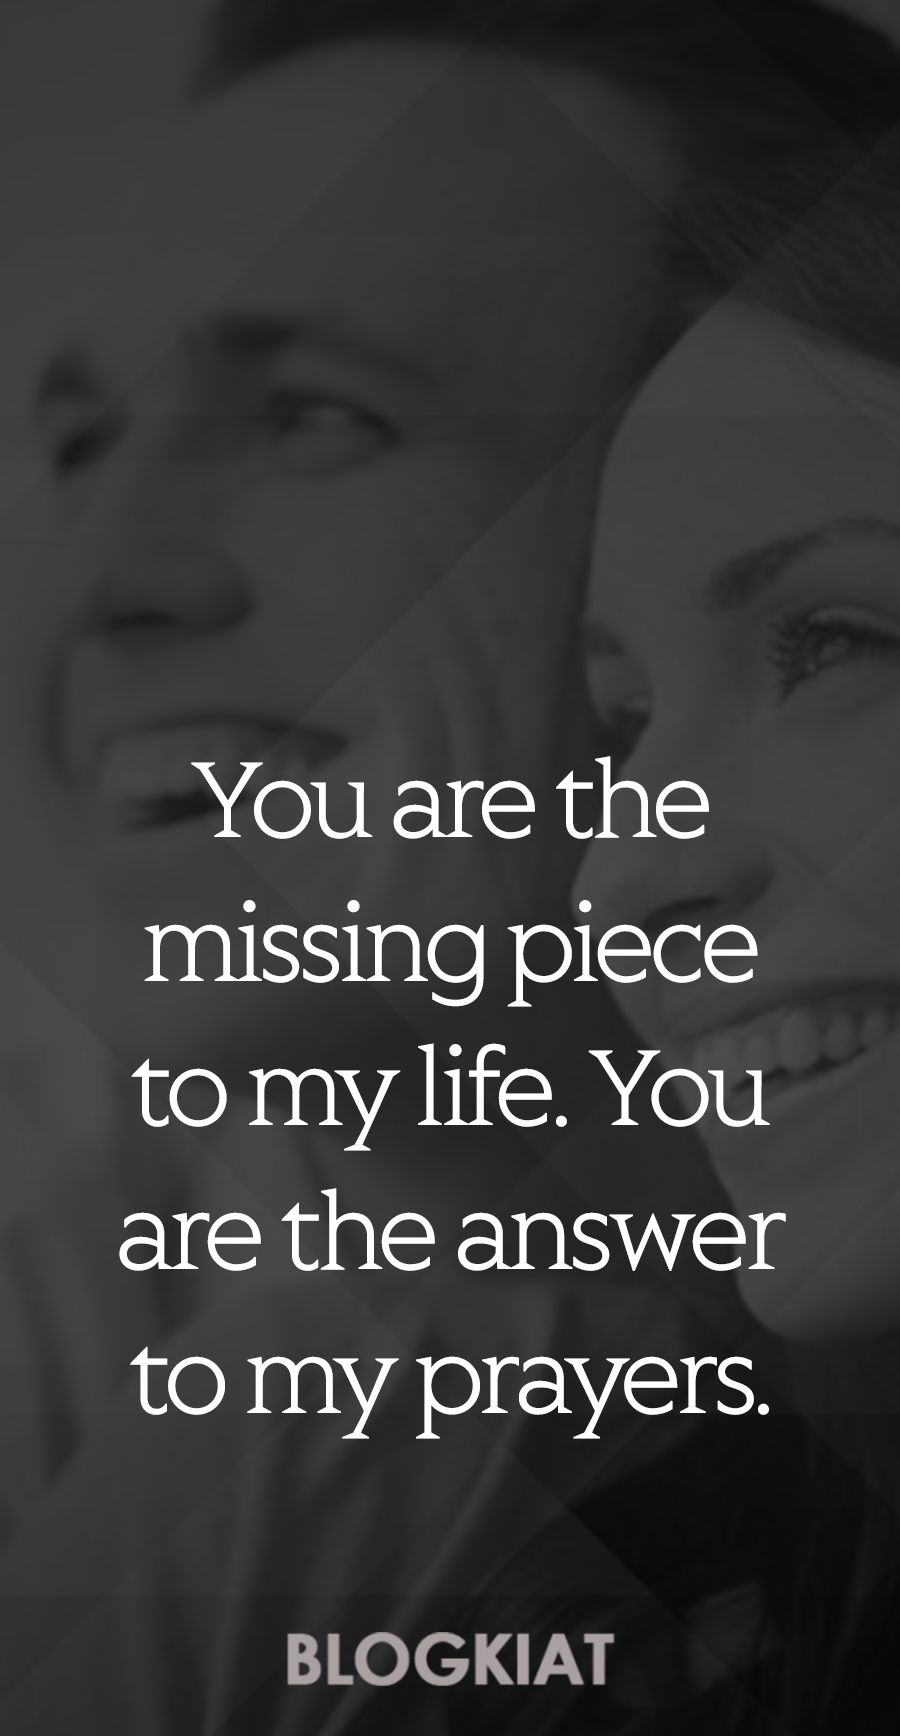 50+ Sweet, Cute U0026 Romantic Love Quotes For Her #cutelovequotes #lovequotes #